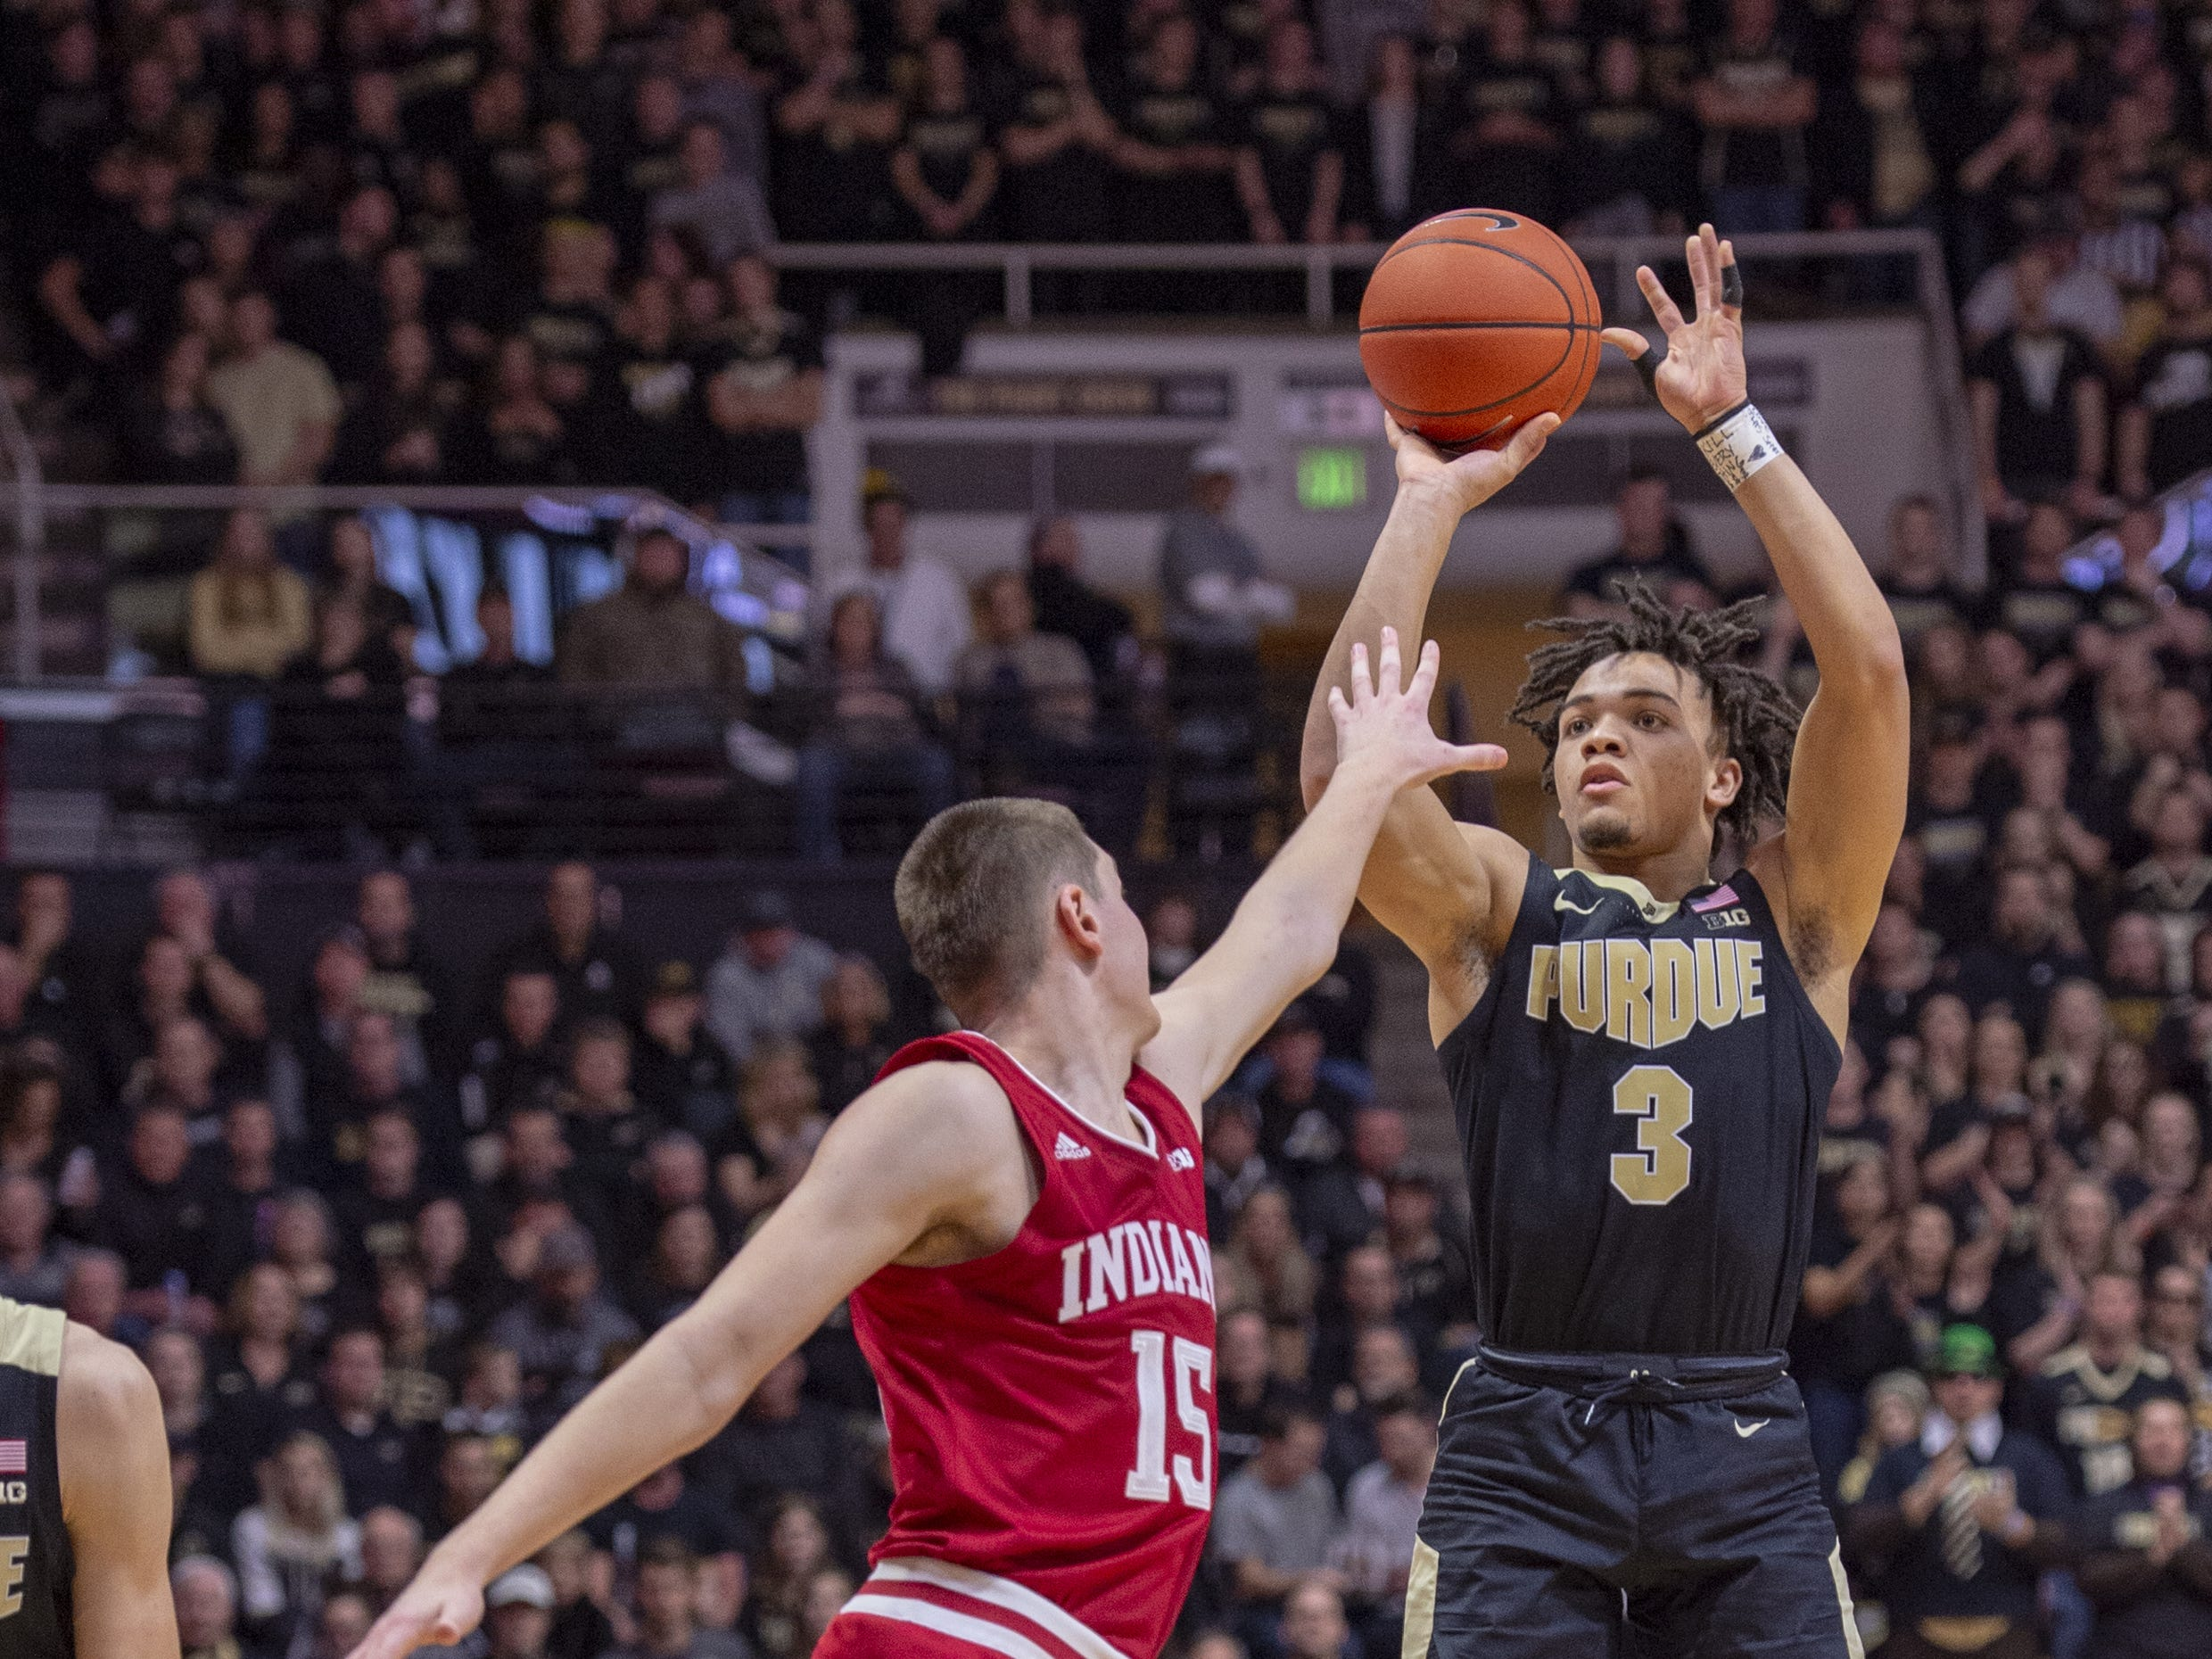 Purdue Boilermakers guard Carsen Edwards (3) puts up a shot over the defense of Indiana Hoosiers guard Zach McRoberts (15) during the second half.